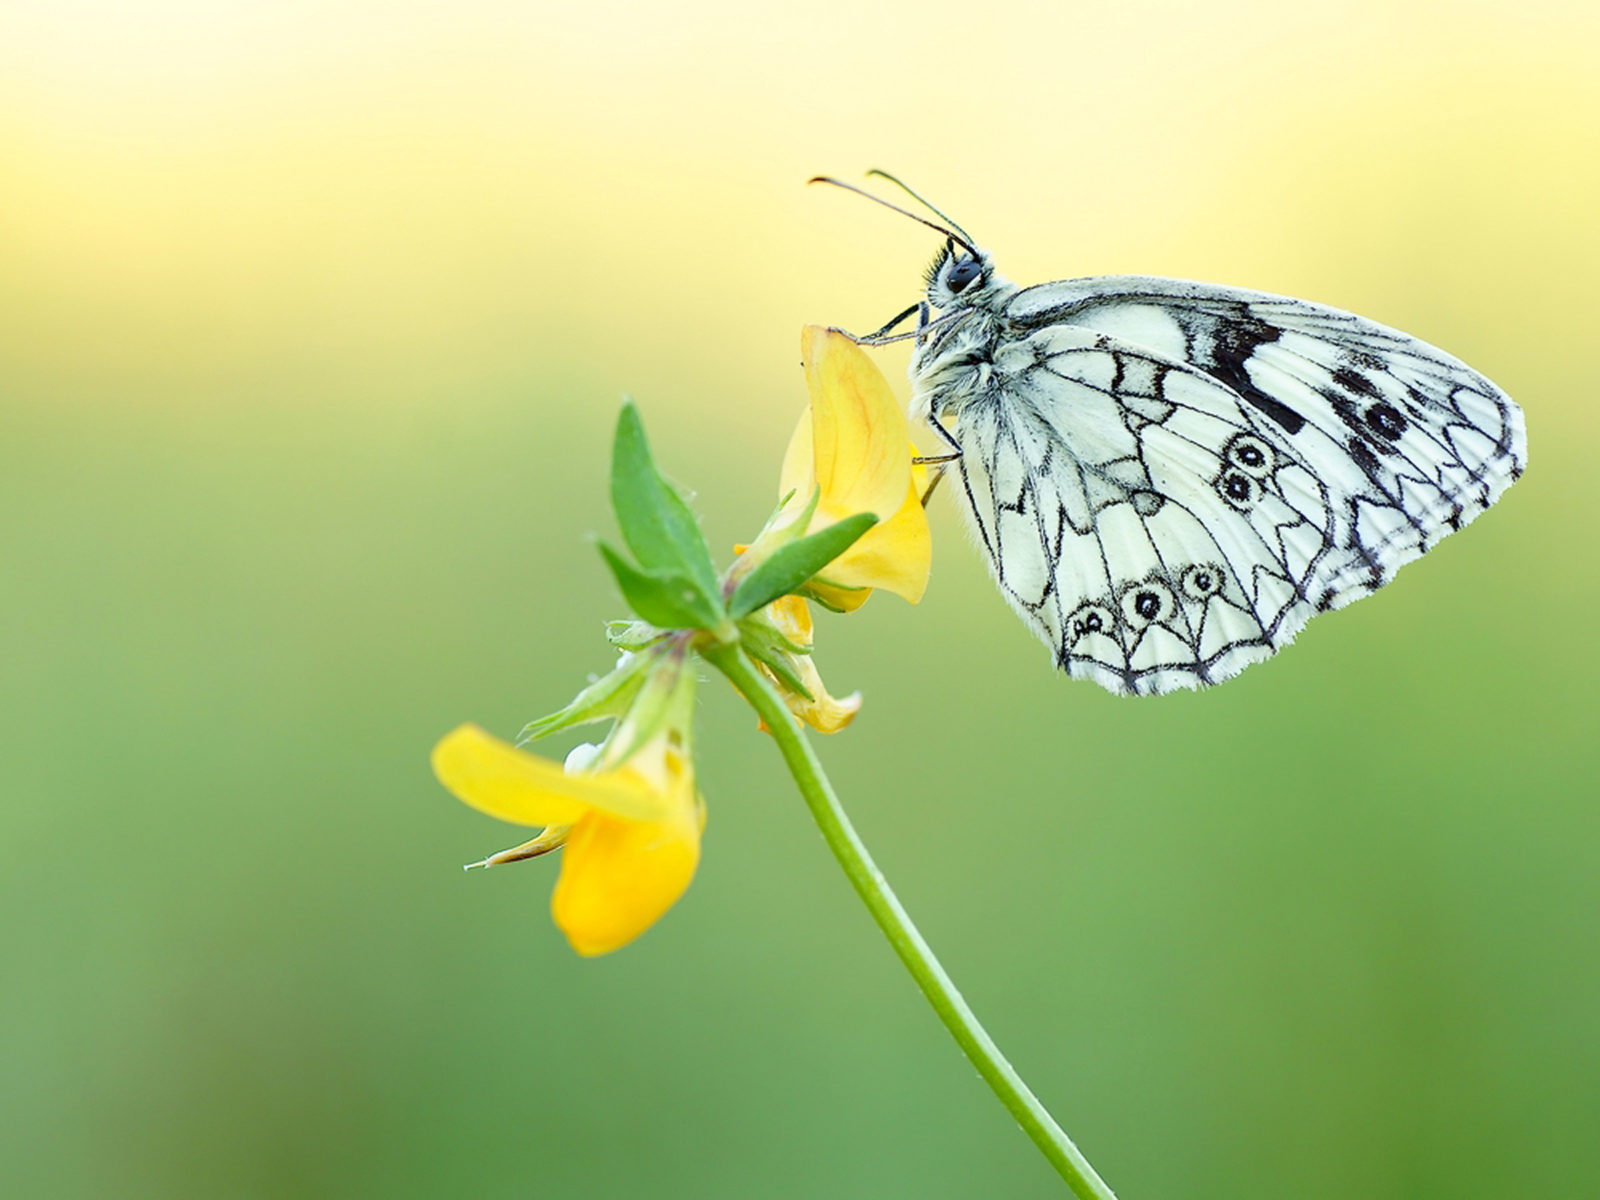 Animated Christmas Wallpaper For Android Black And White Butterfly On A Yellow Flower Desktop